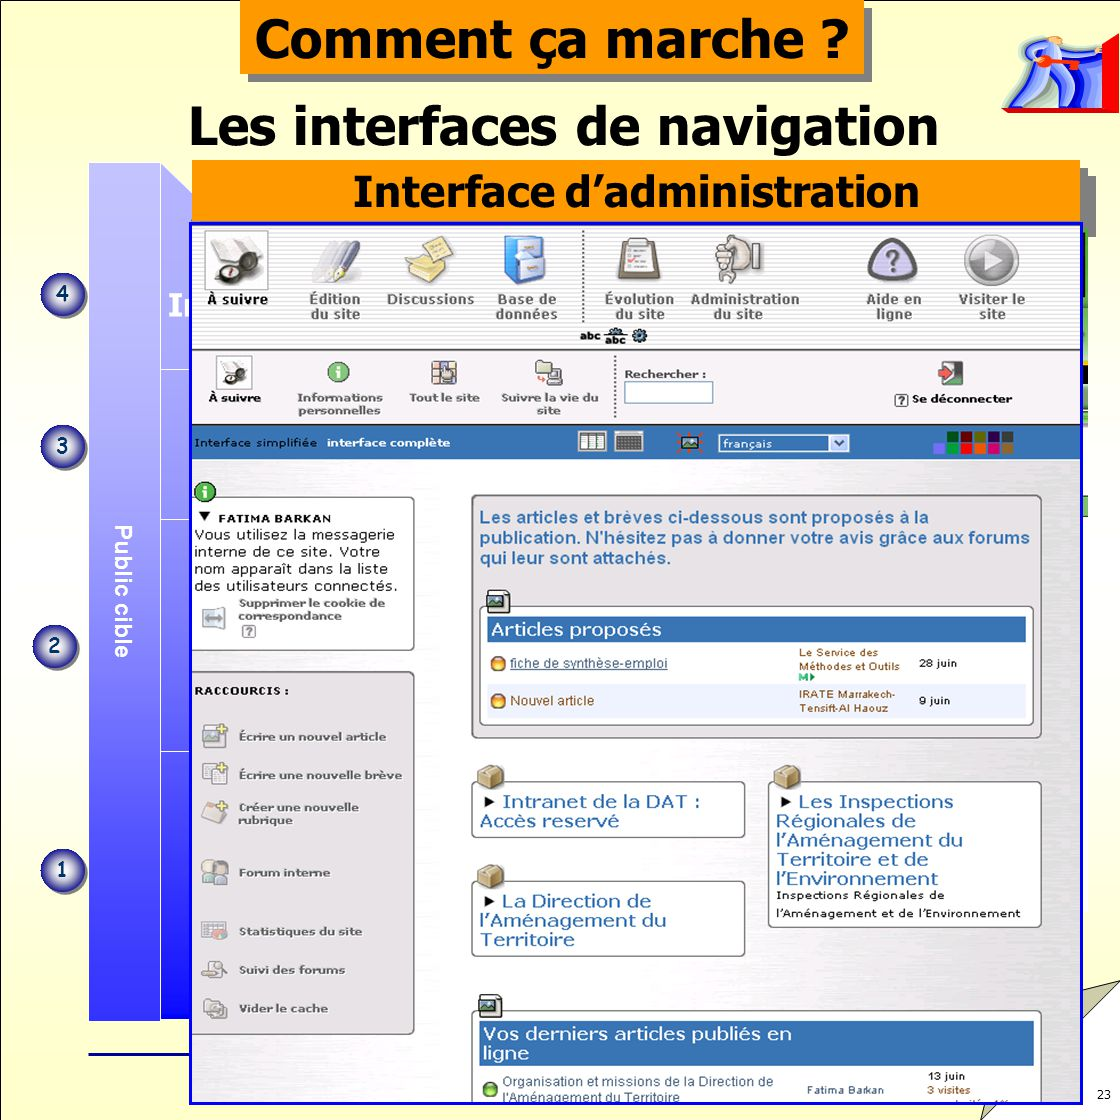 Les interfaces de navigation